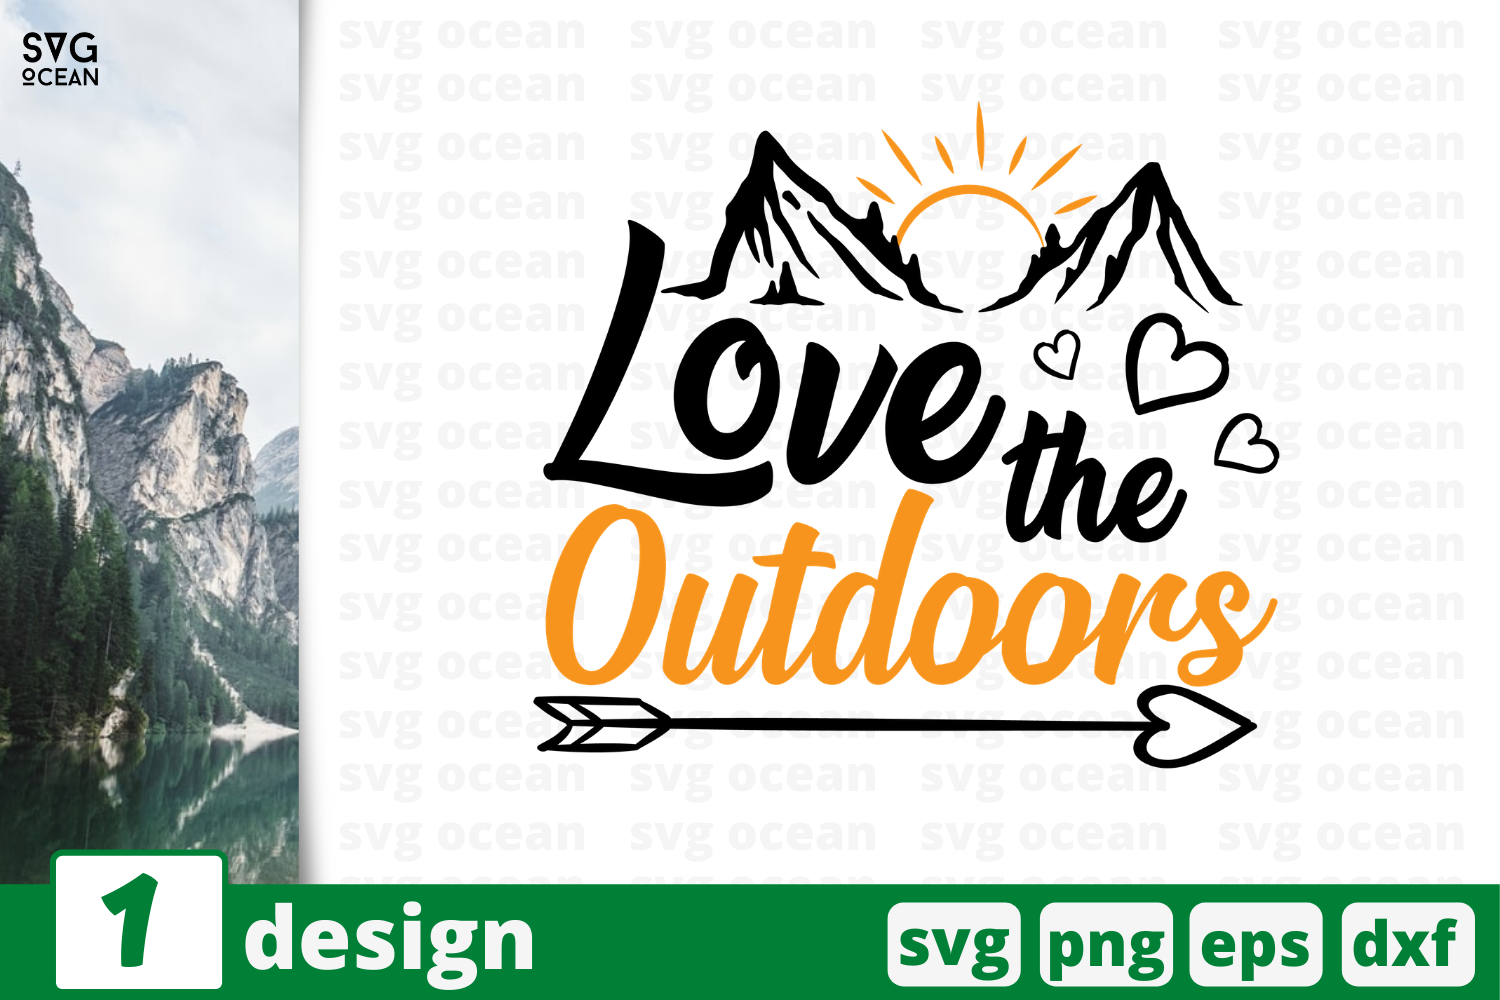 Download Free 1 Love The Outdoors Camping Cricut Svg Graphic By Svgocean for Cricut Explore, Silhouette and other cutting machines.